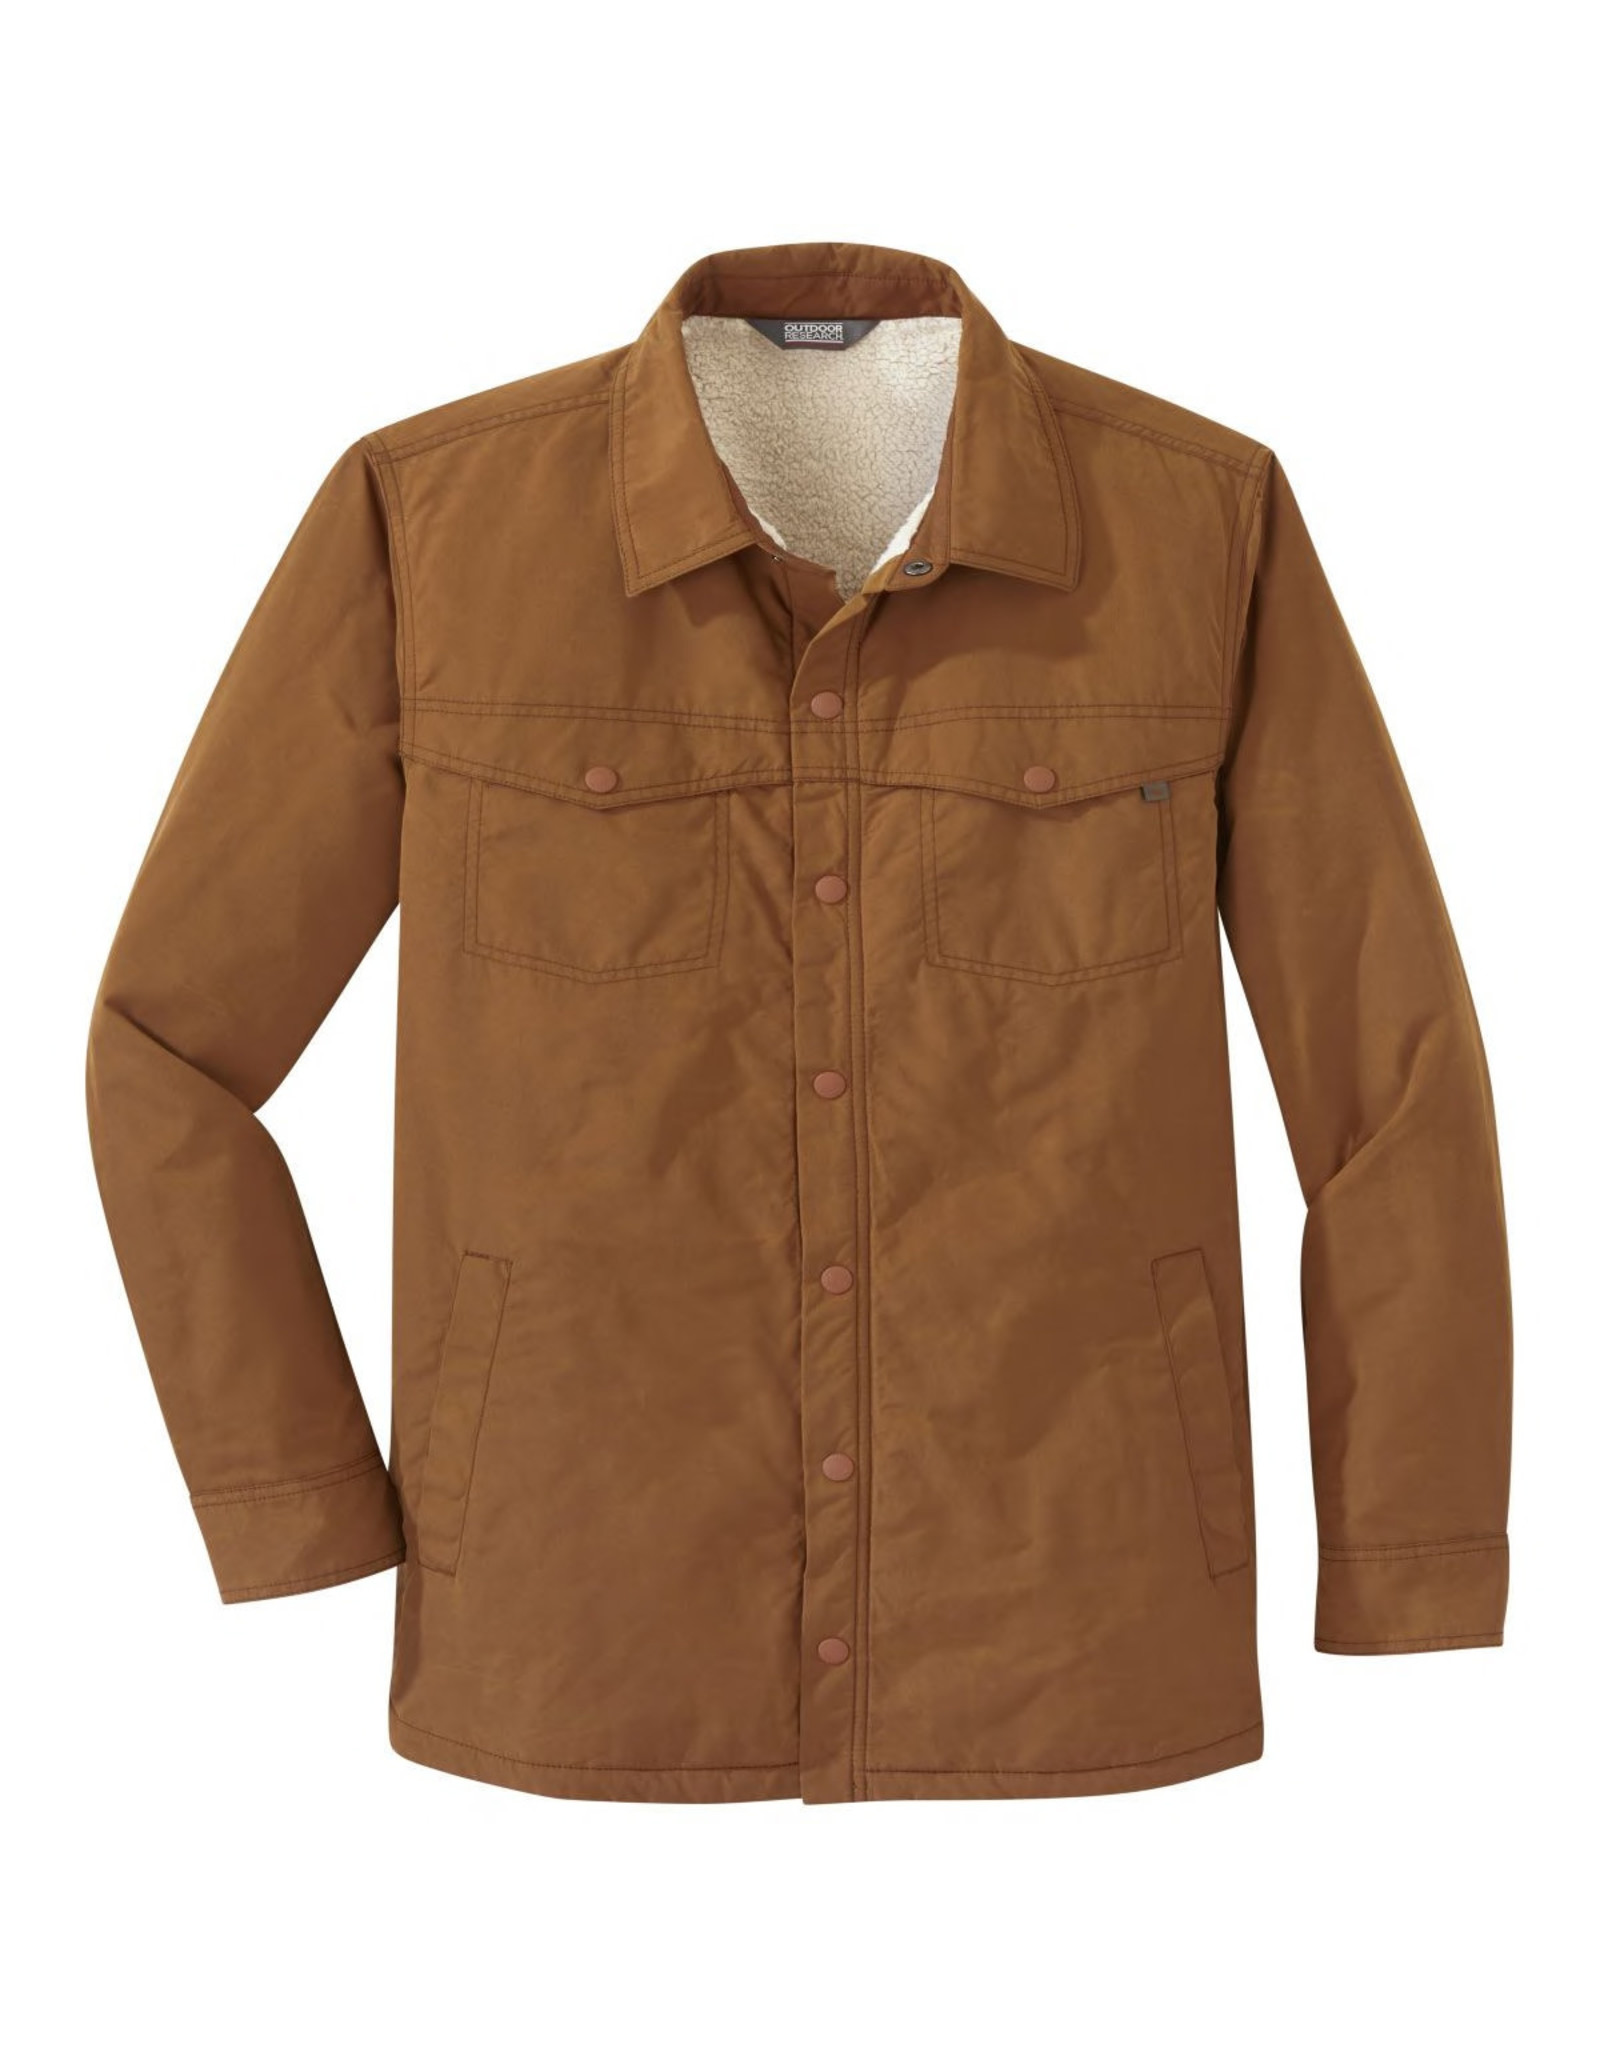 Outdoor Research Outdoor Research M's Wilson Shirt Jacket